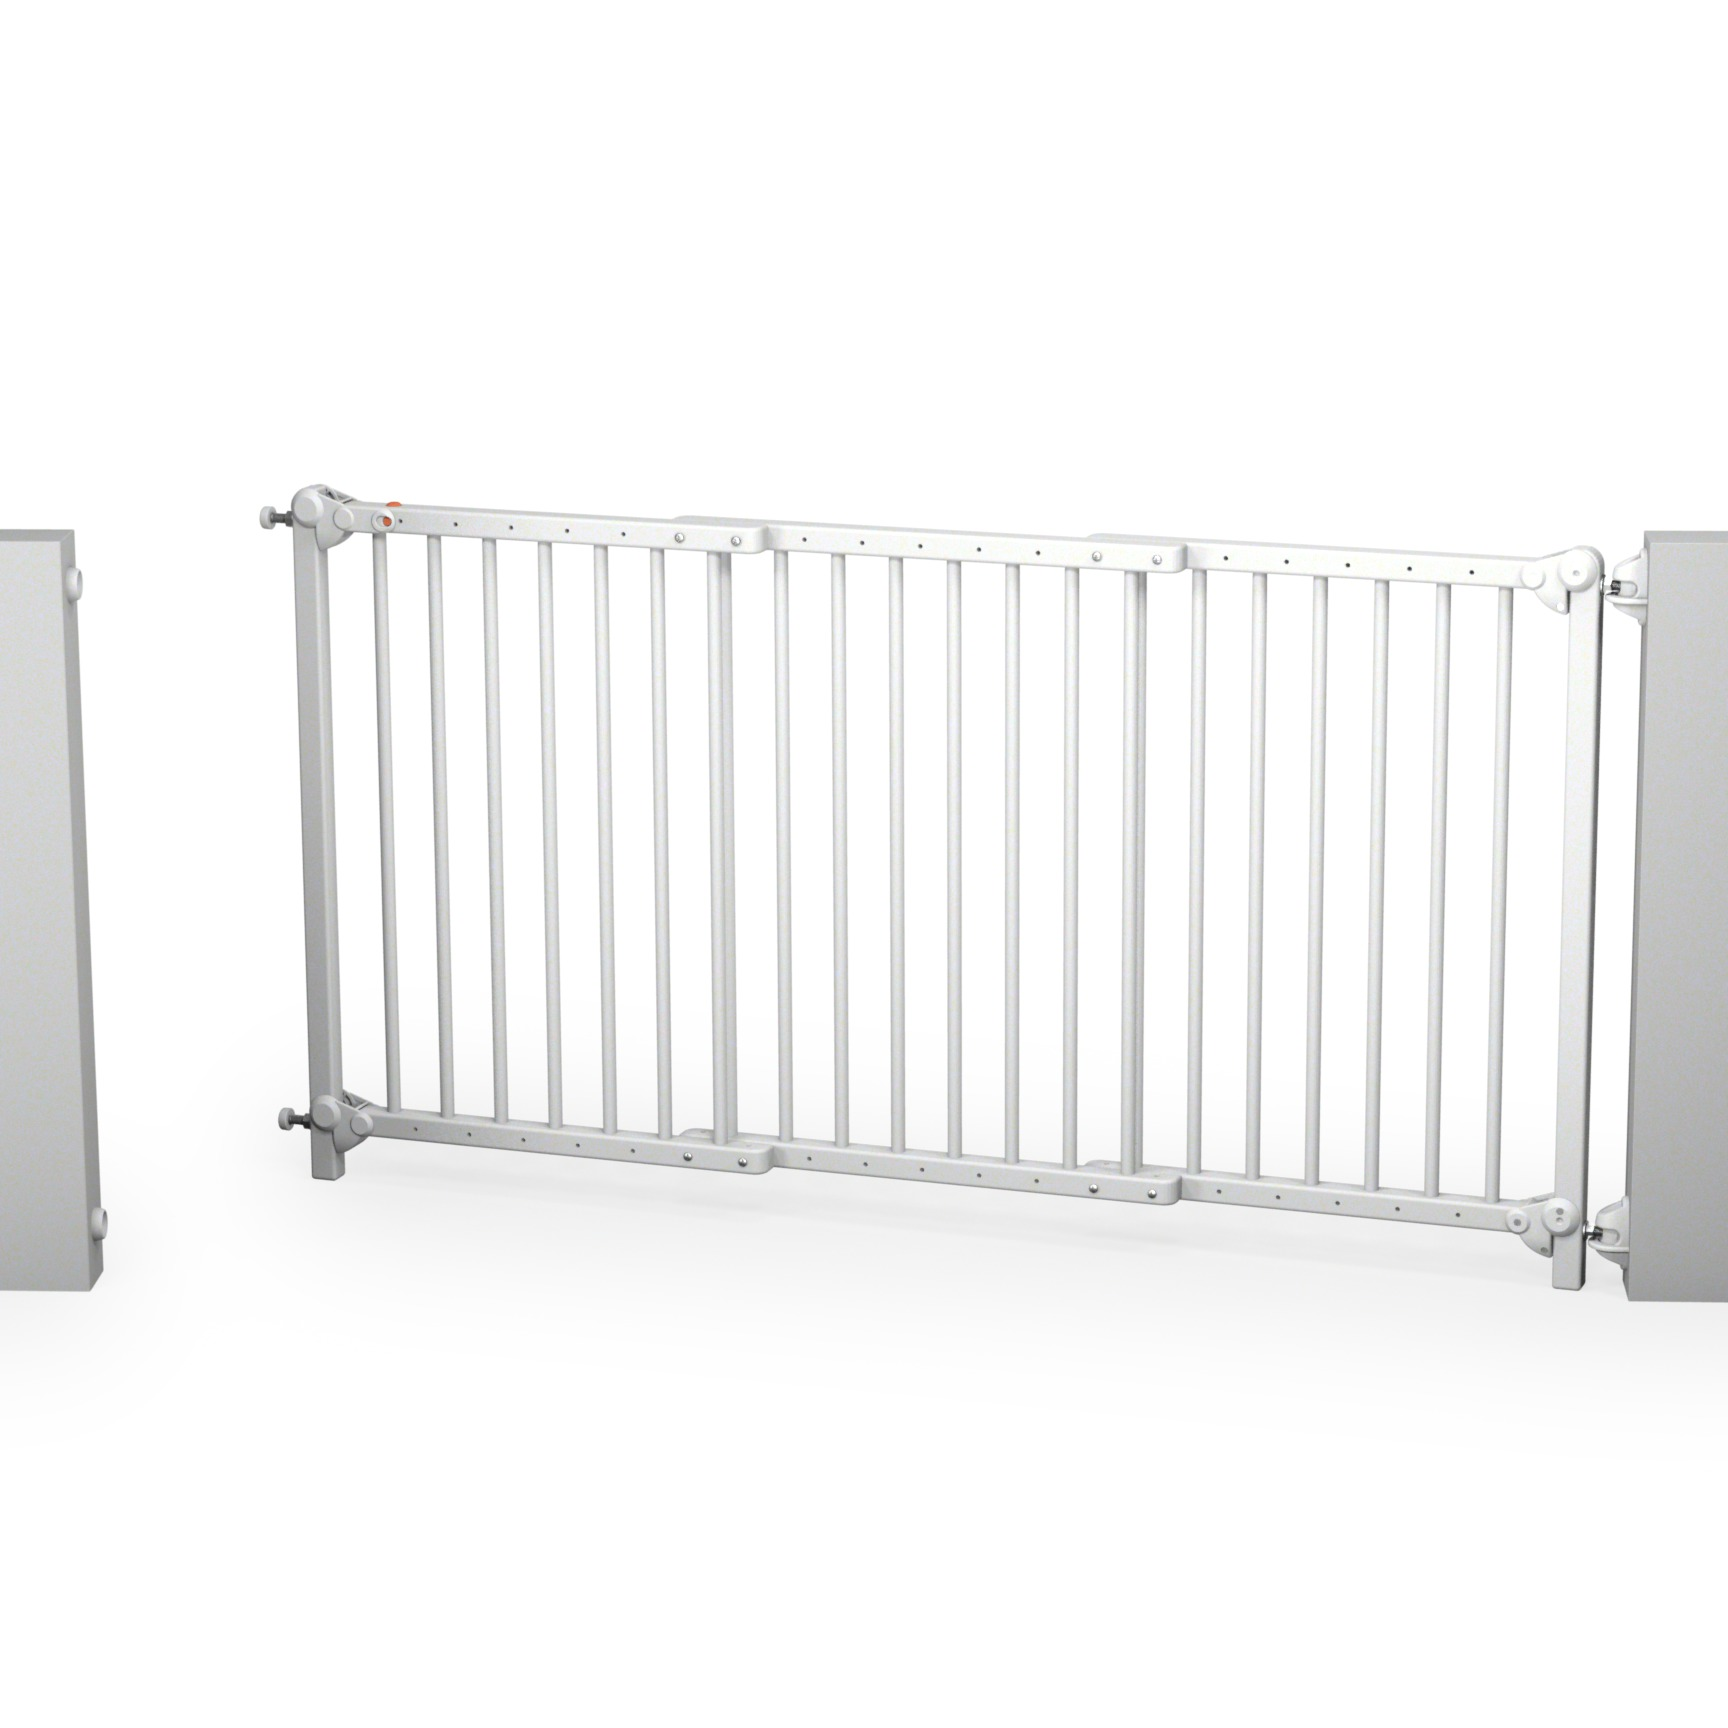 barriere securite bebe 150 cm